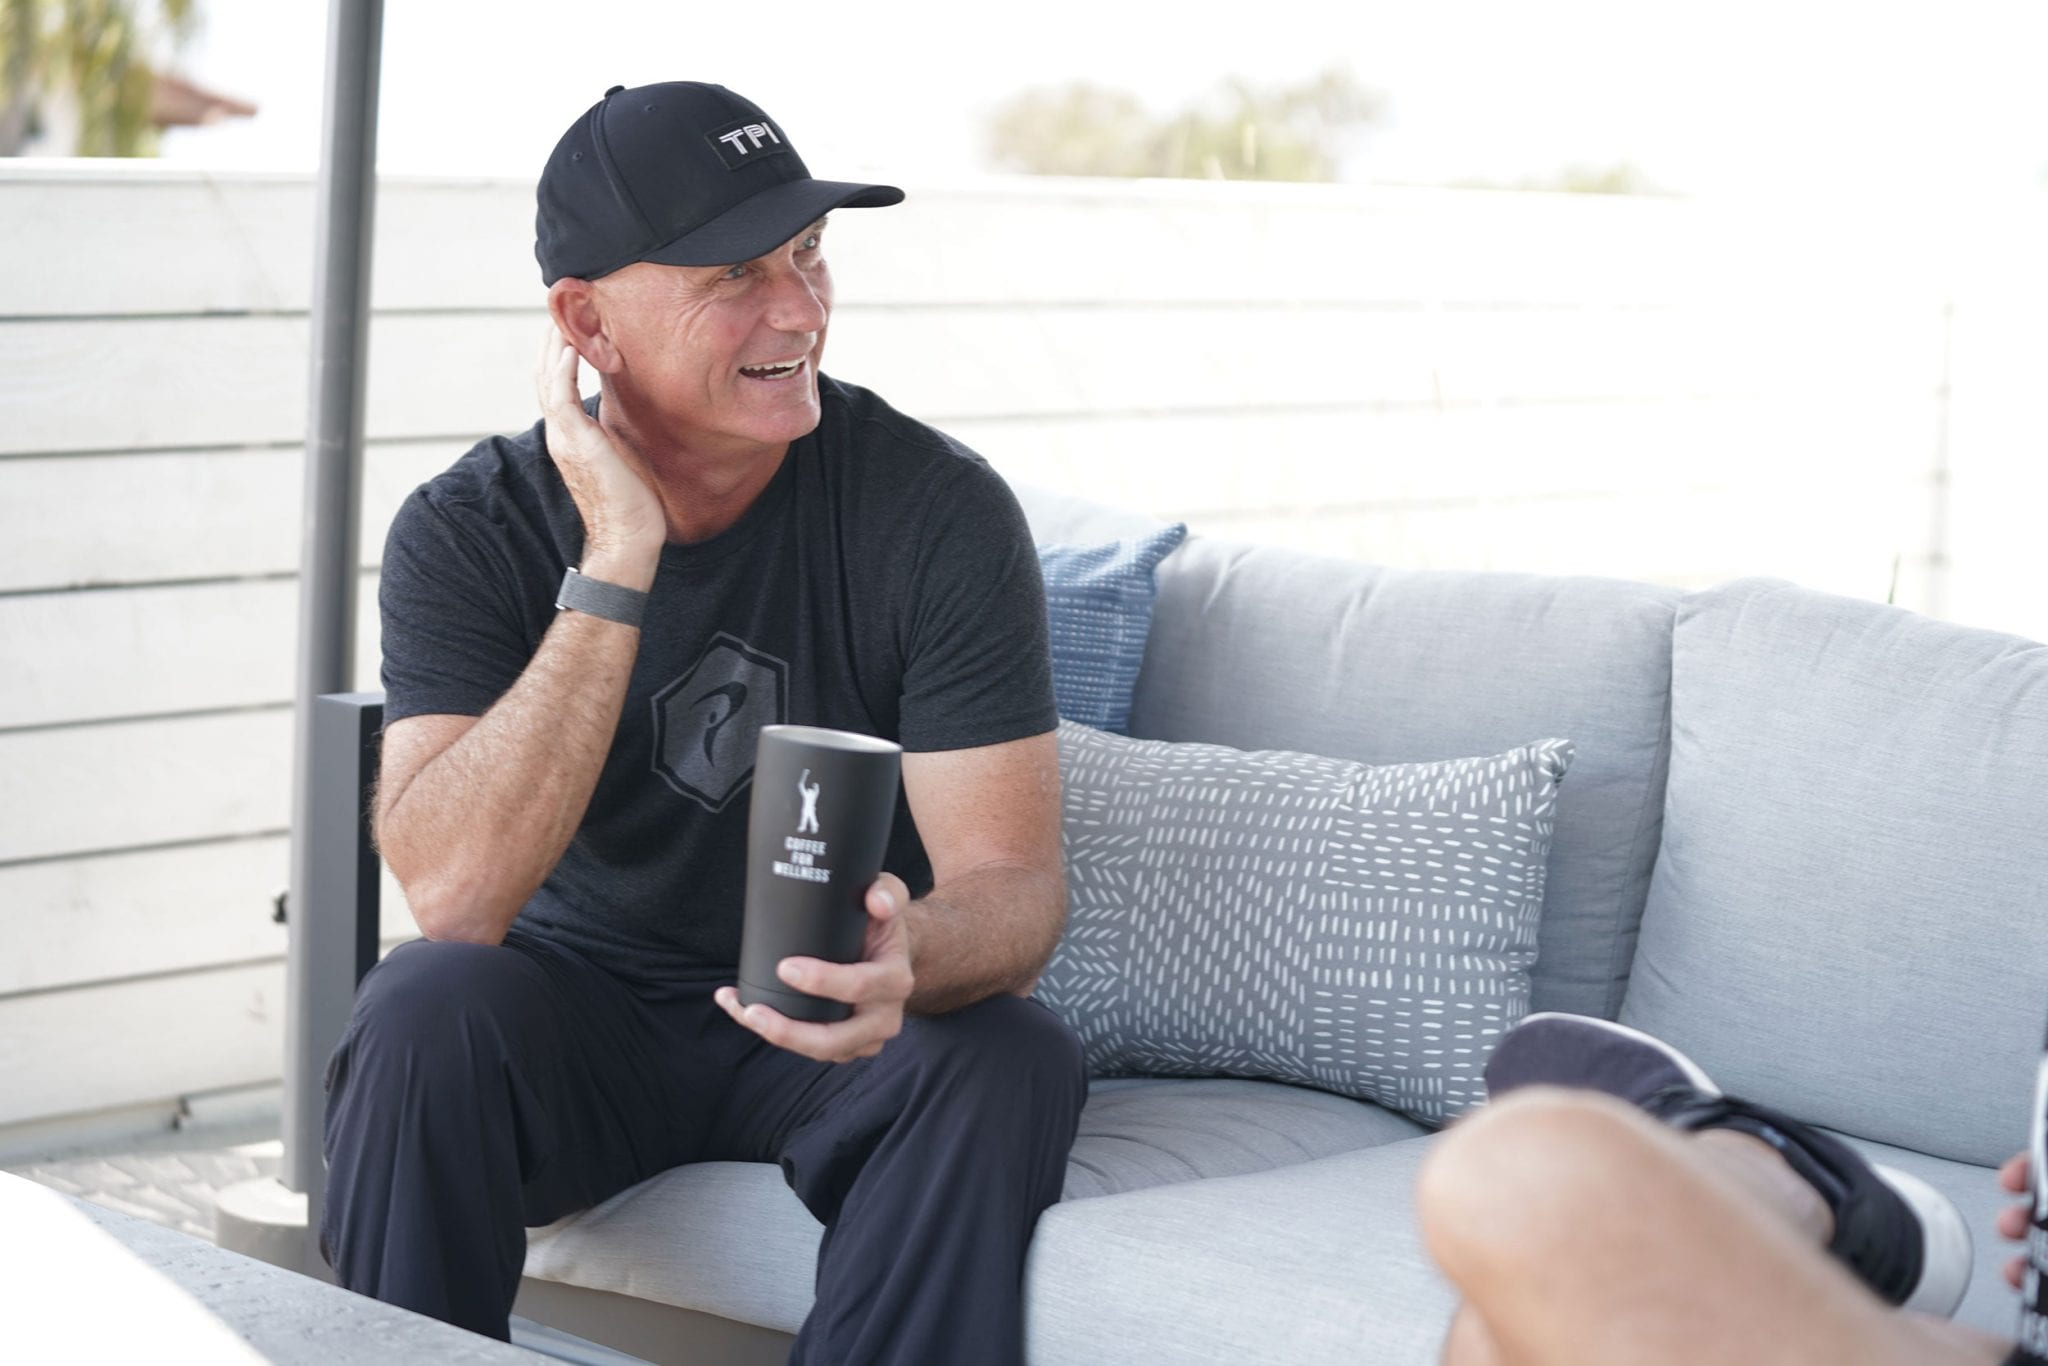 Dave Phillips, Phil Mickelson's coach, drinking Coffee for Wellness